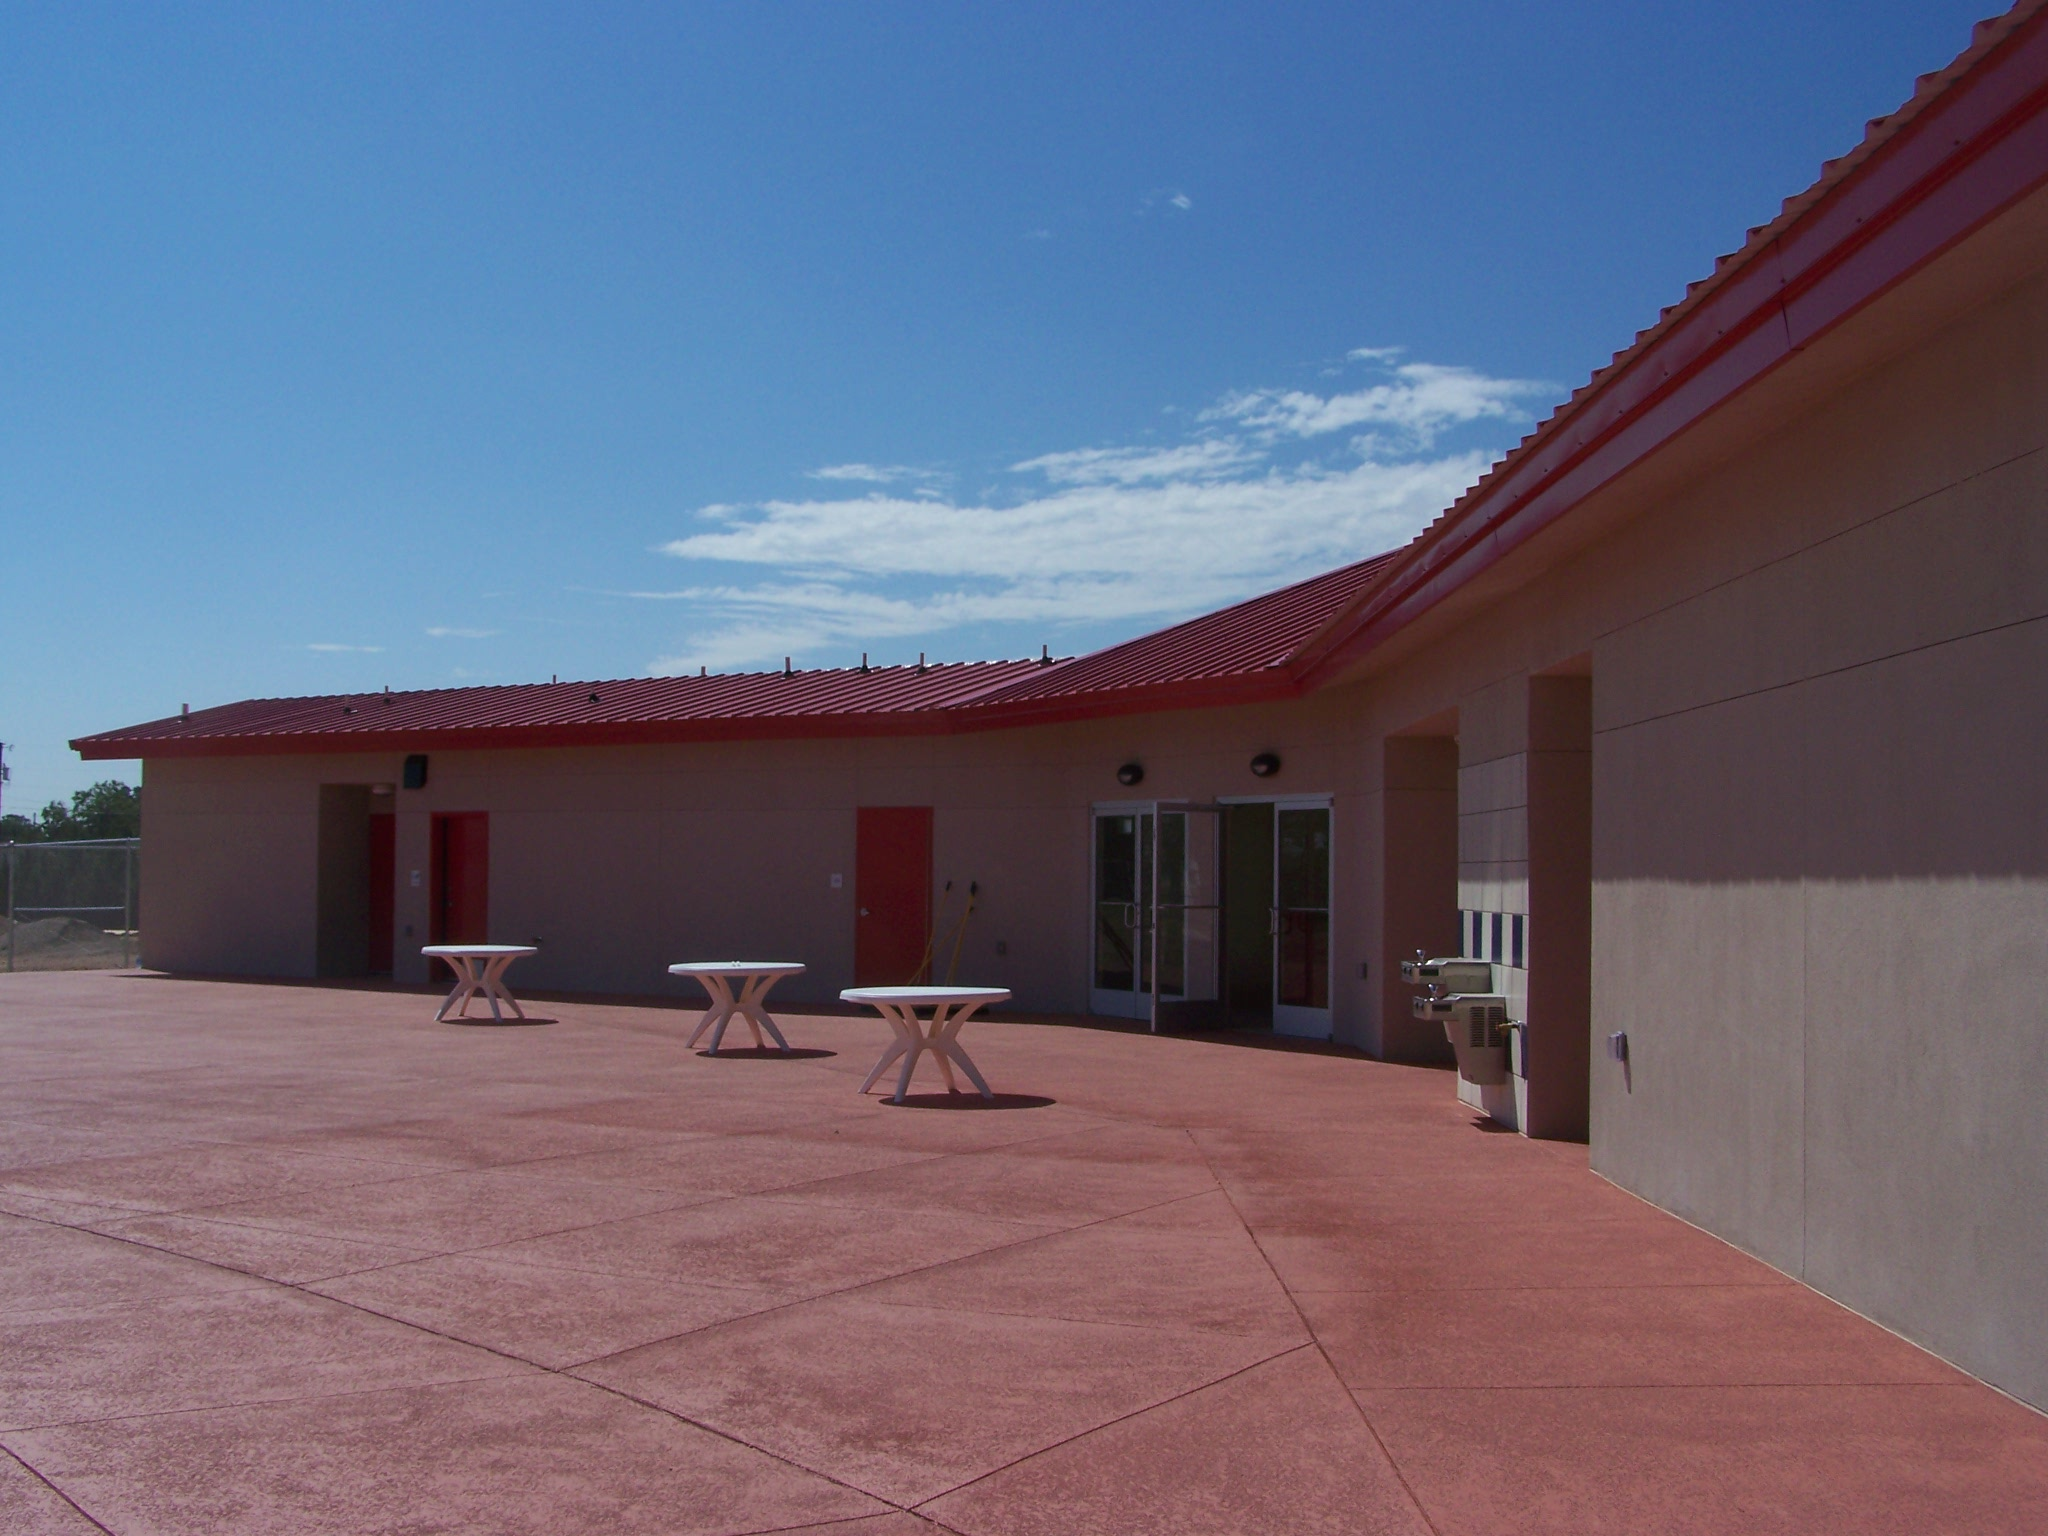 Facility Building and Picnic Tables